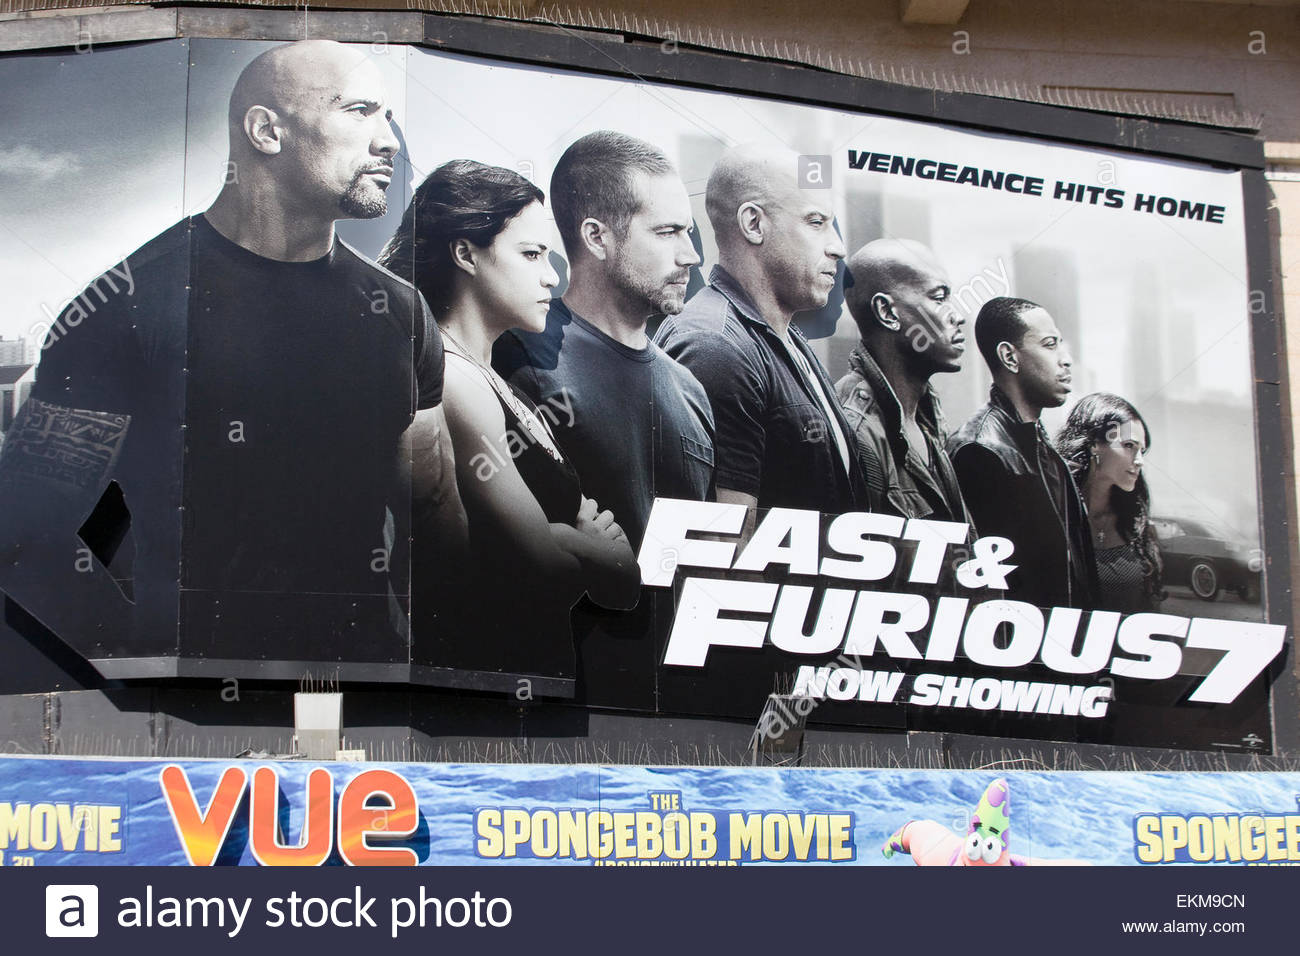 fast and furious 7 movie photos fast and furious 7 movie images alamy. Black Bedroom Furniture Sets. Home Design Ideas